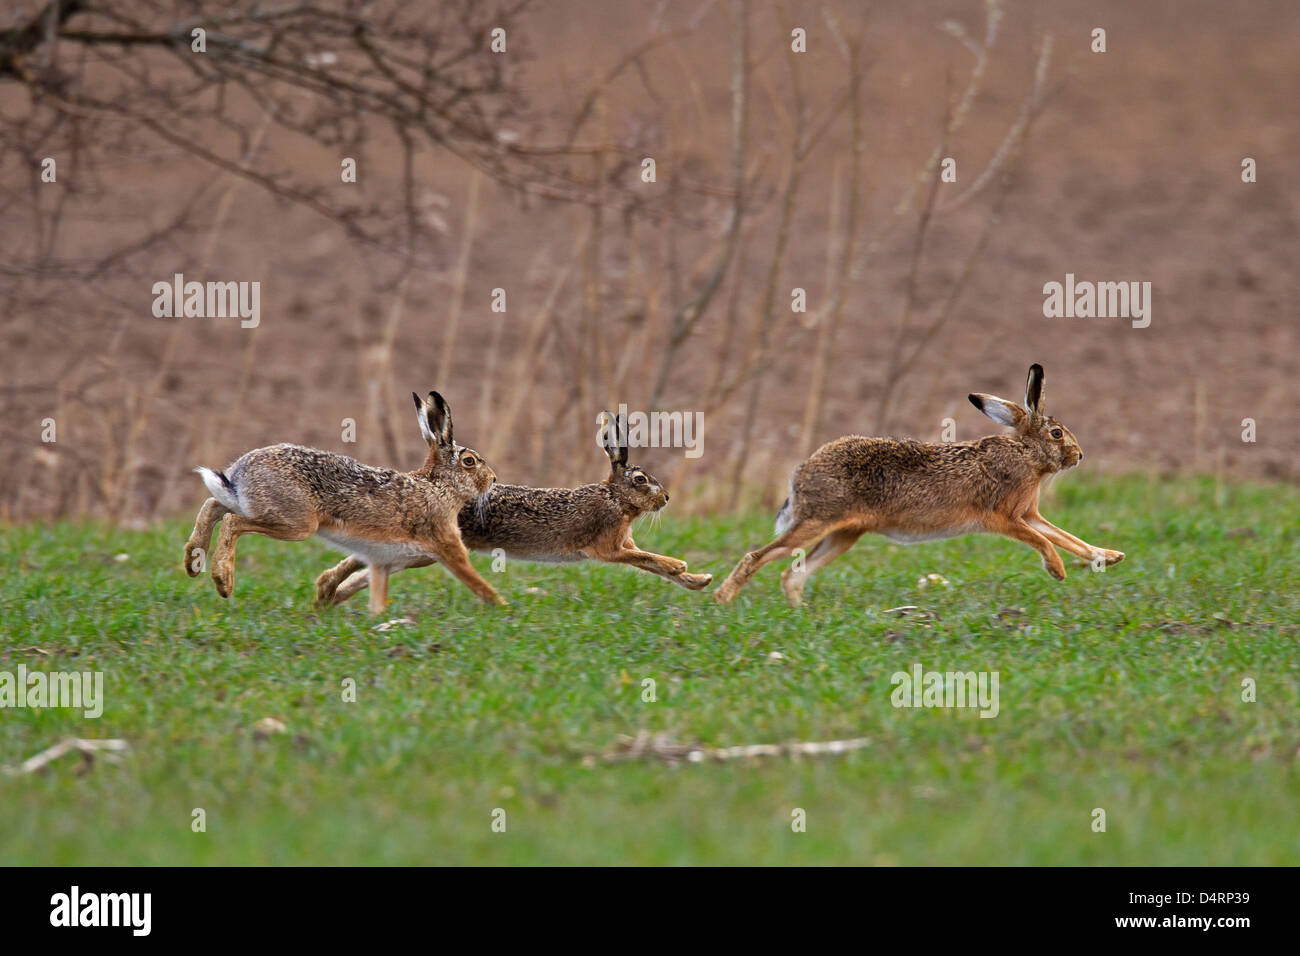 European Brown Hare (Lepus europaeus), males chasing female during the breeding season in early spring - Stock Image